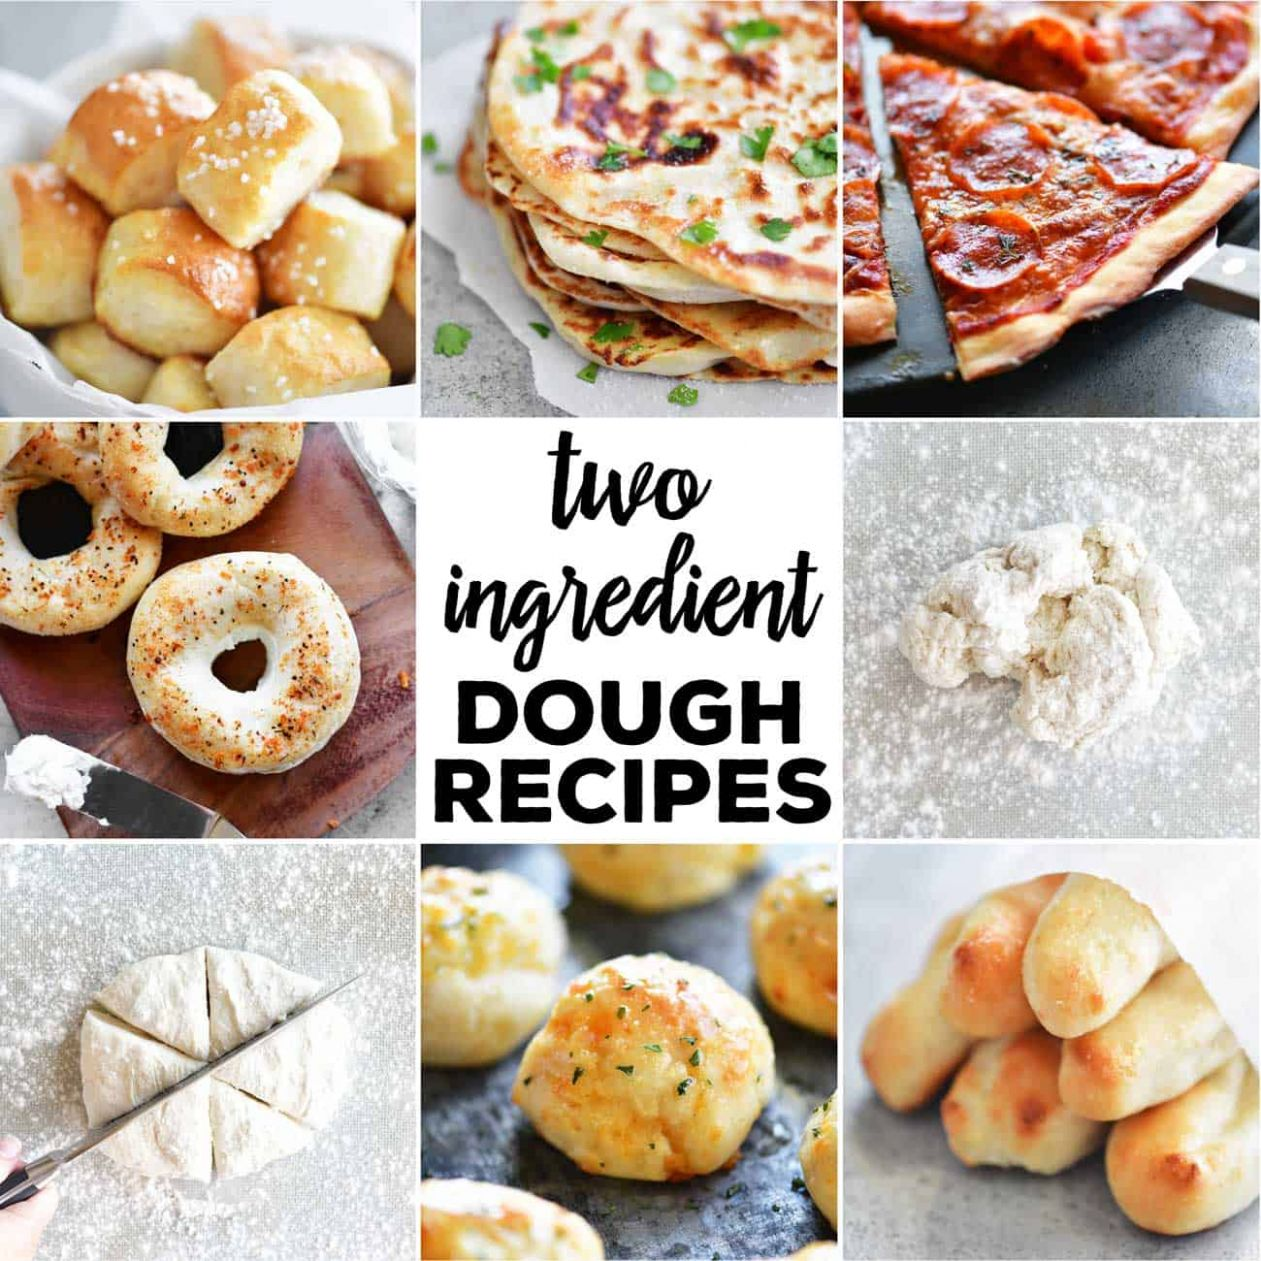 Two Ingredient Dough Recipes - Simple Recipes Not Many Ingredients